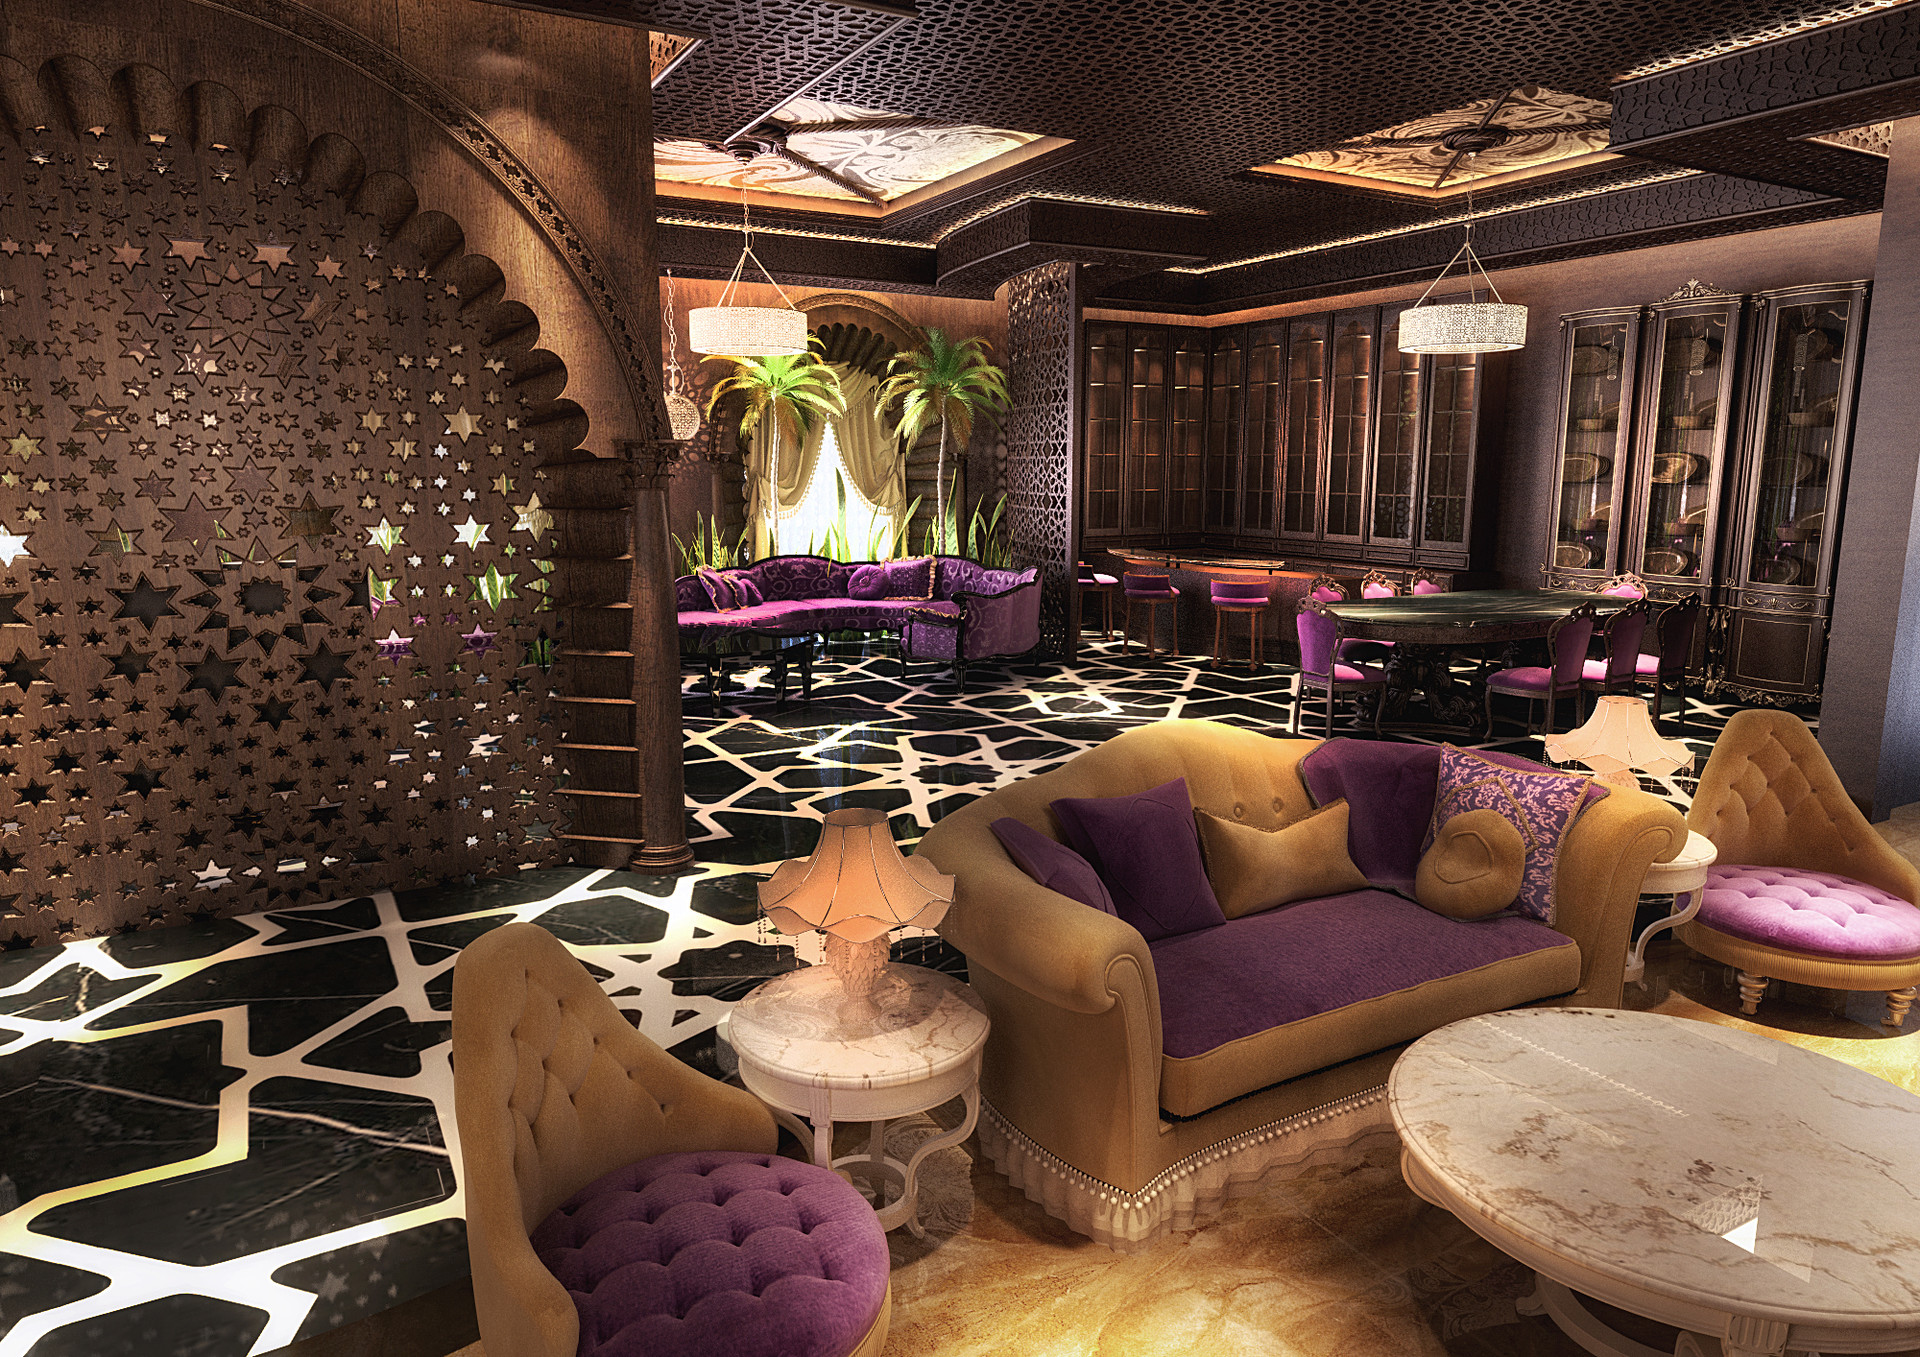 ArtStation - Moroccan Living room in Doha, Usmaan Mukhtar